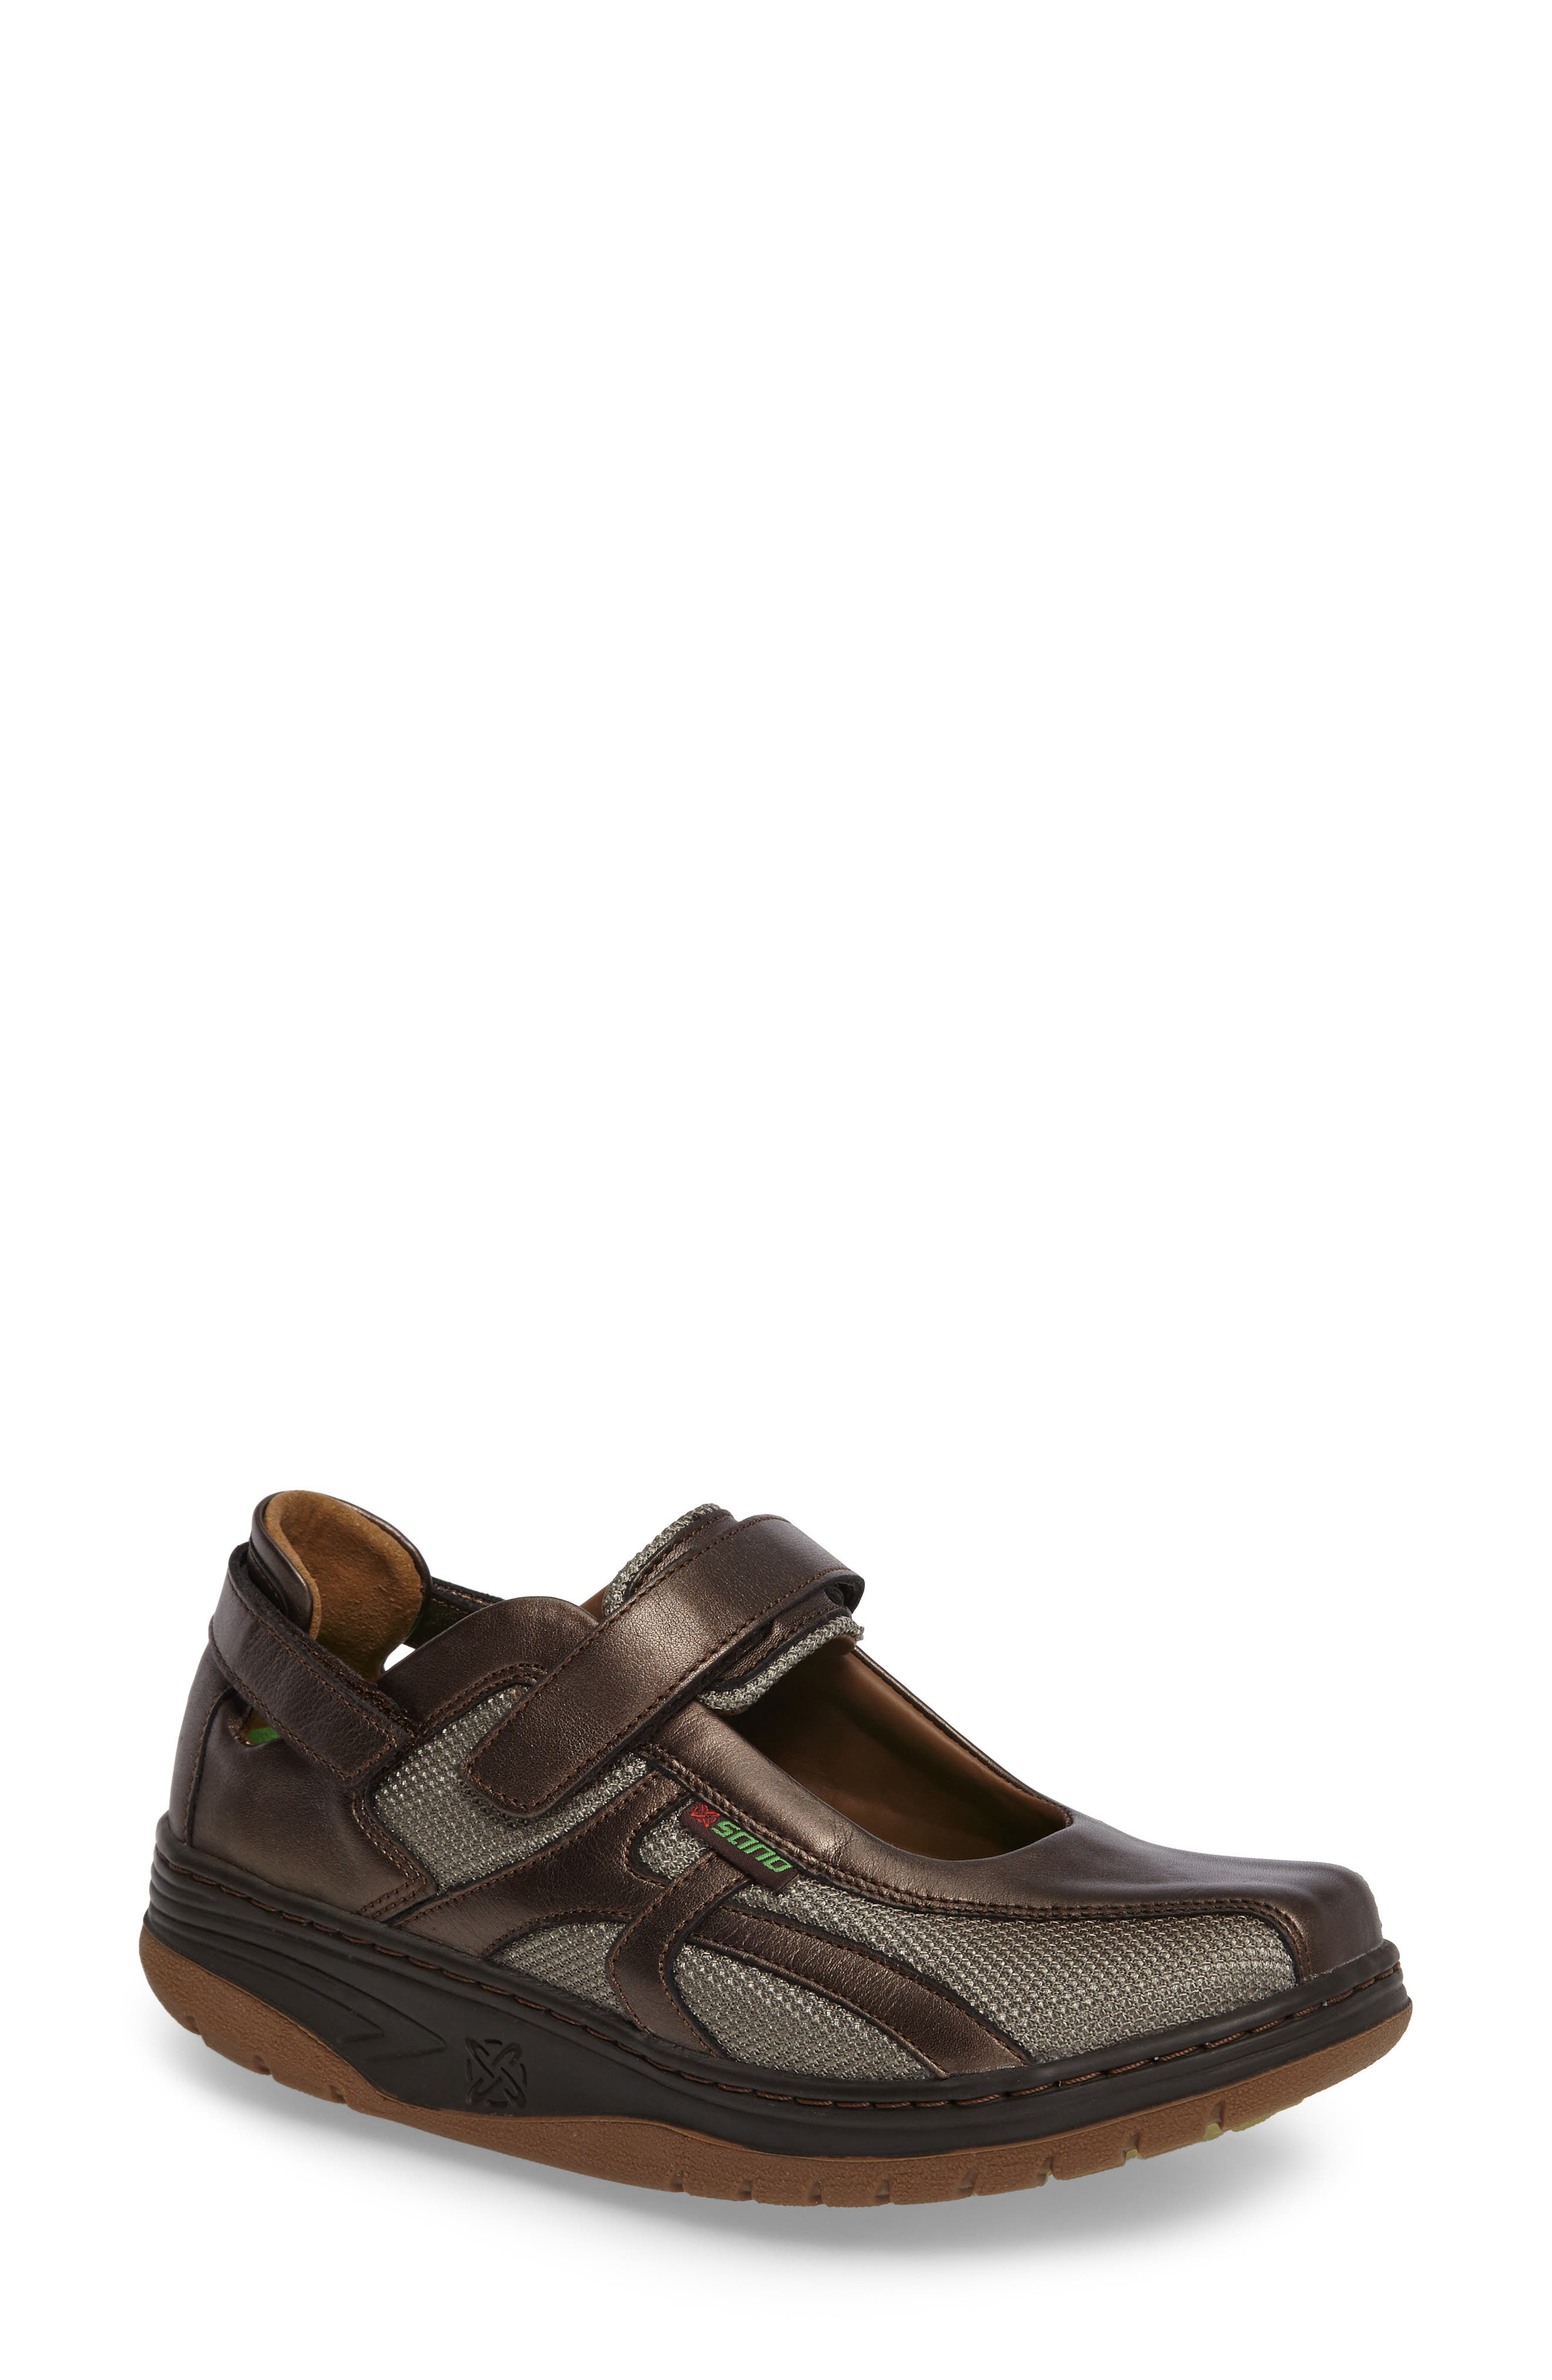 Alternate Image 1 Selected - Sano by Mephisto 'Excess' Walking Shoe (Women)